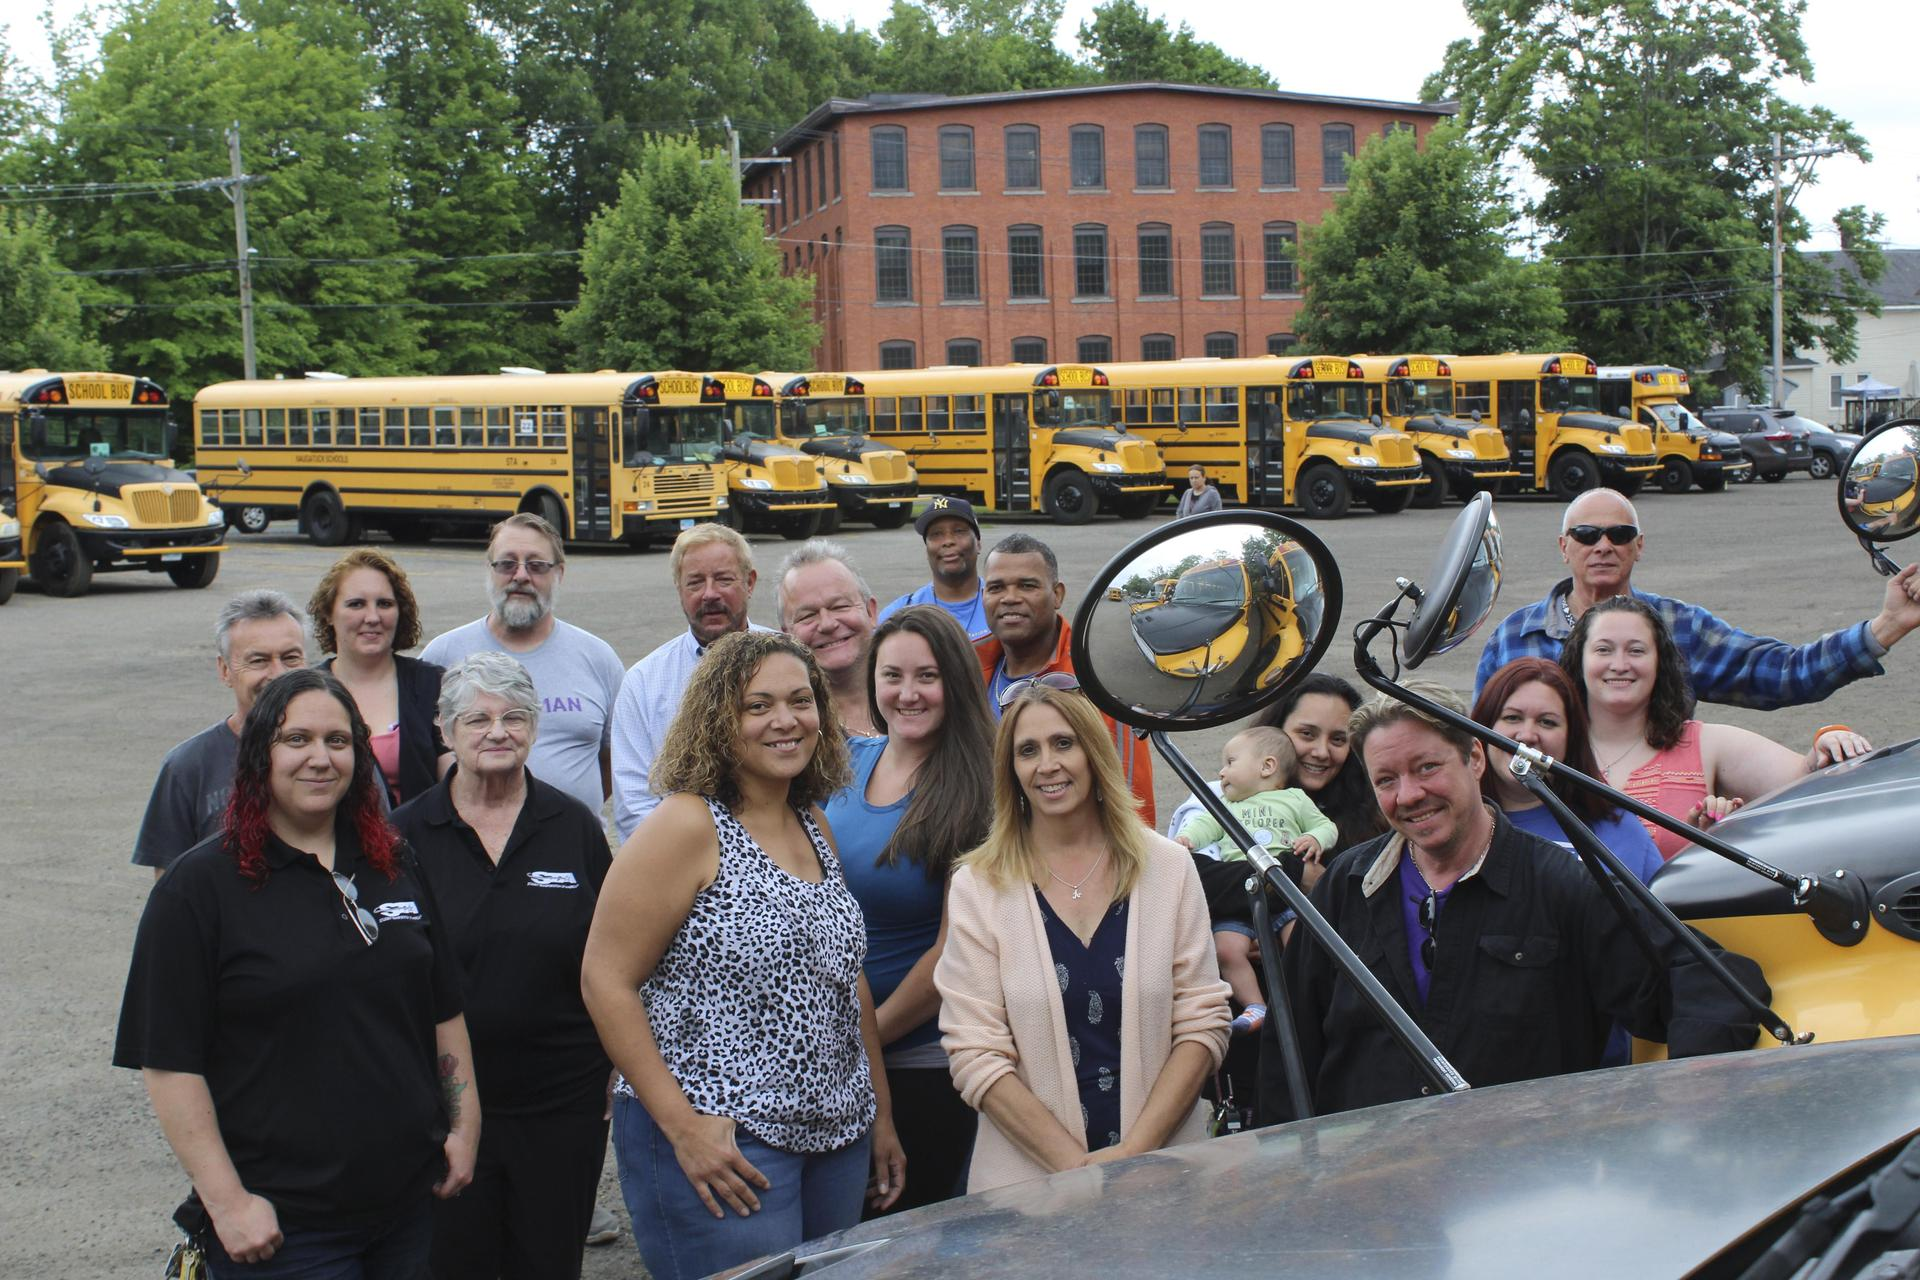 Bus drivers posing in front of busses